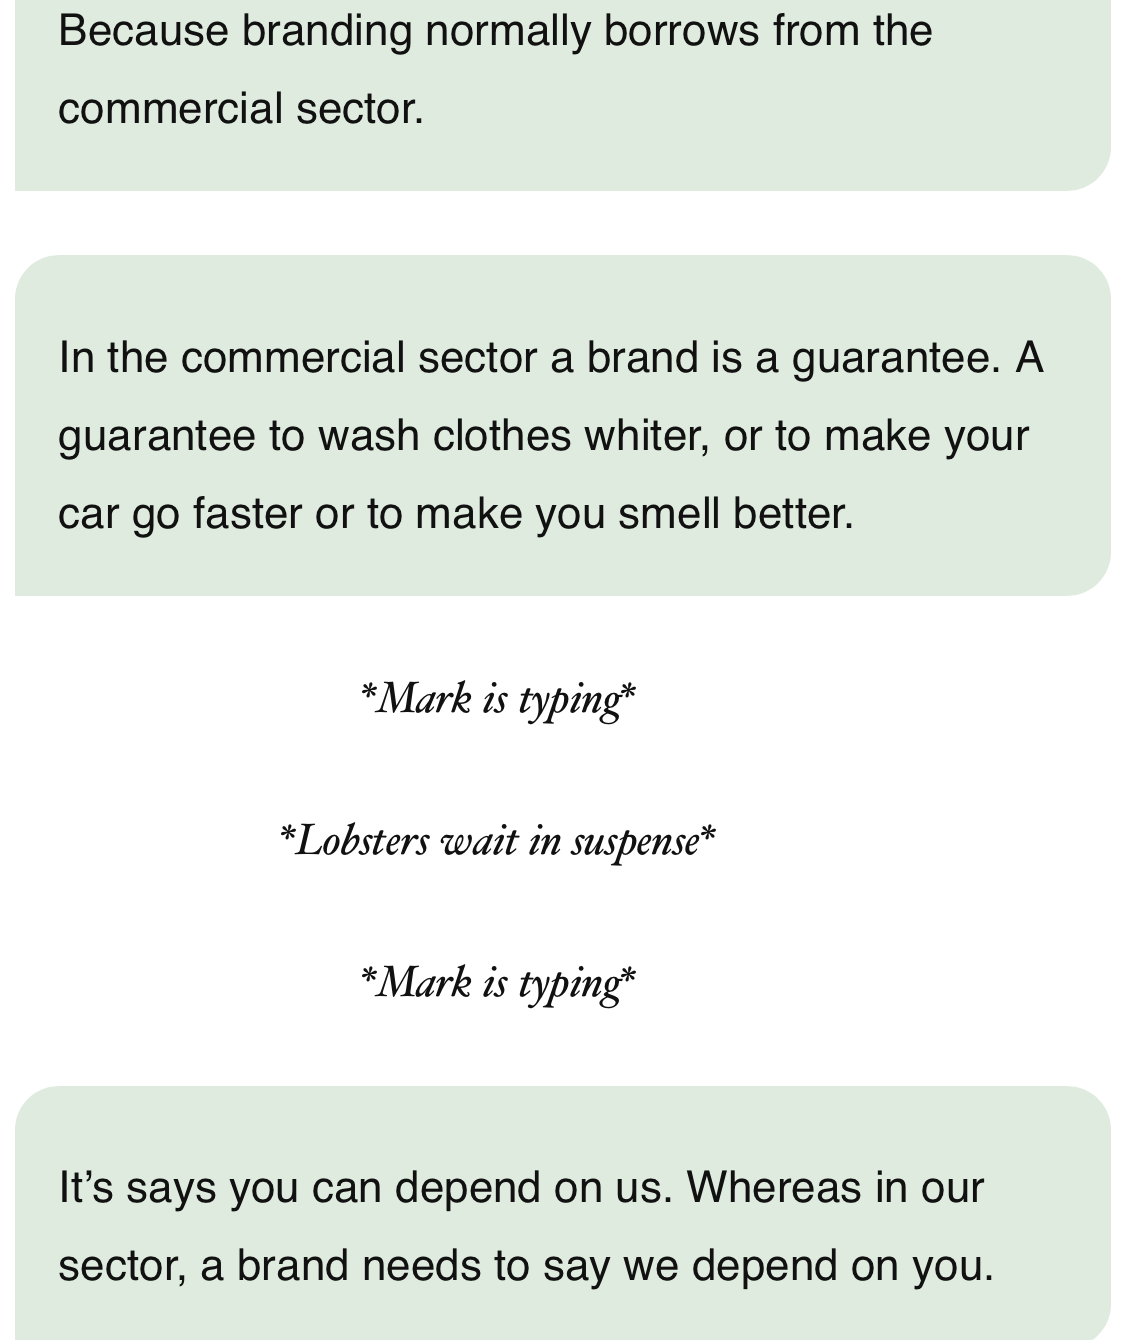 Screenshot of earlier conversation. Mark says In the commercial sector, a brand is a guarantee. A guarantee to wash clothes whiter or make your car go faster or to make you smell better. It says you can depend on us. Whereas in our sector, a brand needs to say we depend on you.